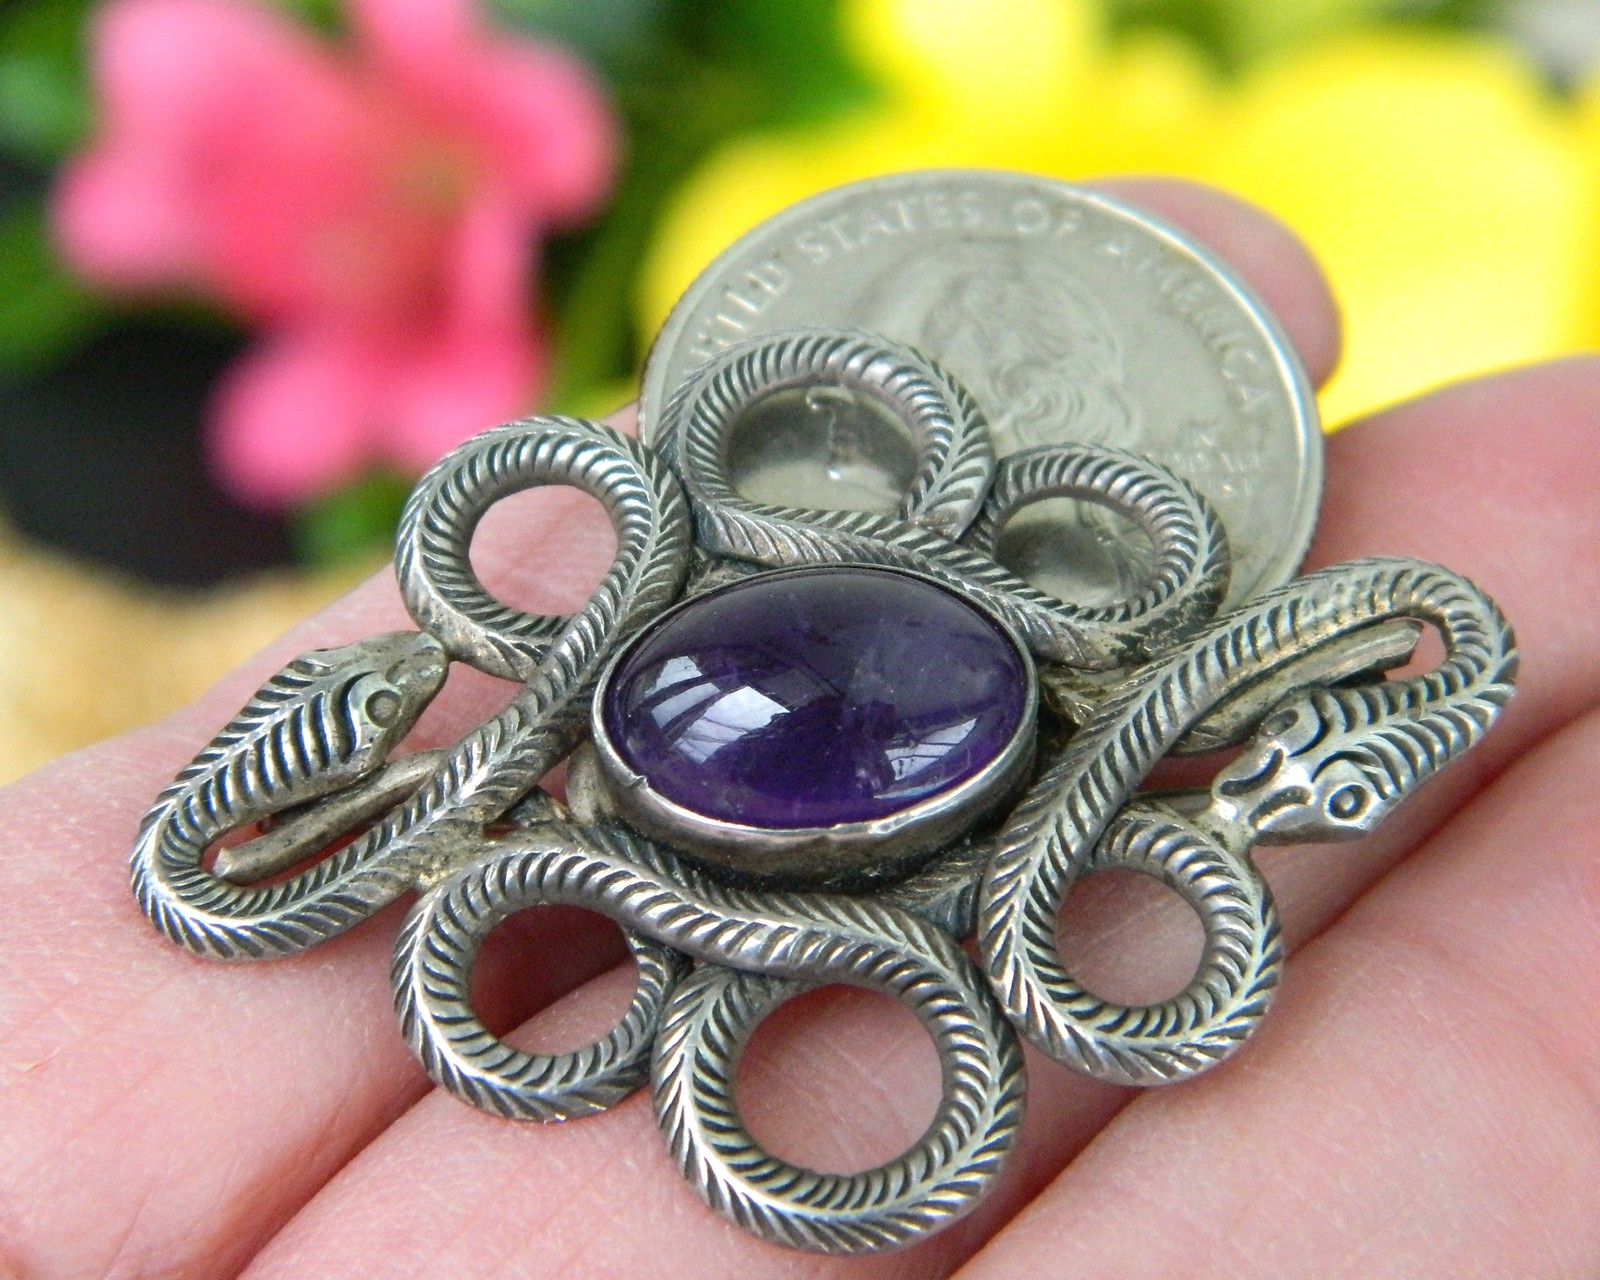 Vintage Coiled Snakes Brooch Pin Amethyst Cabochon Sterling Silver 925